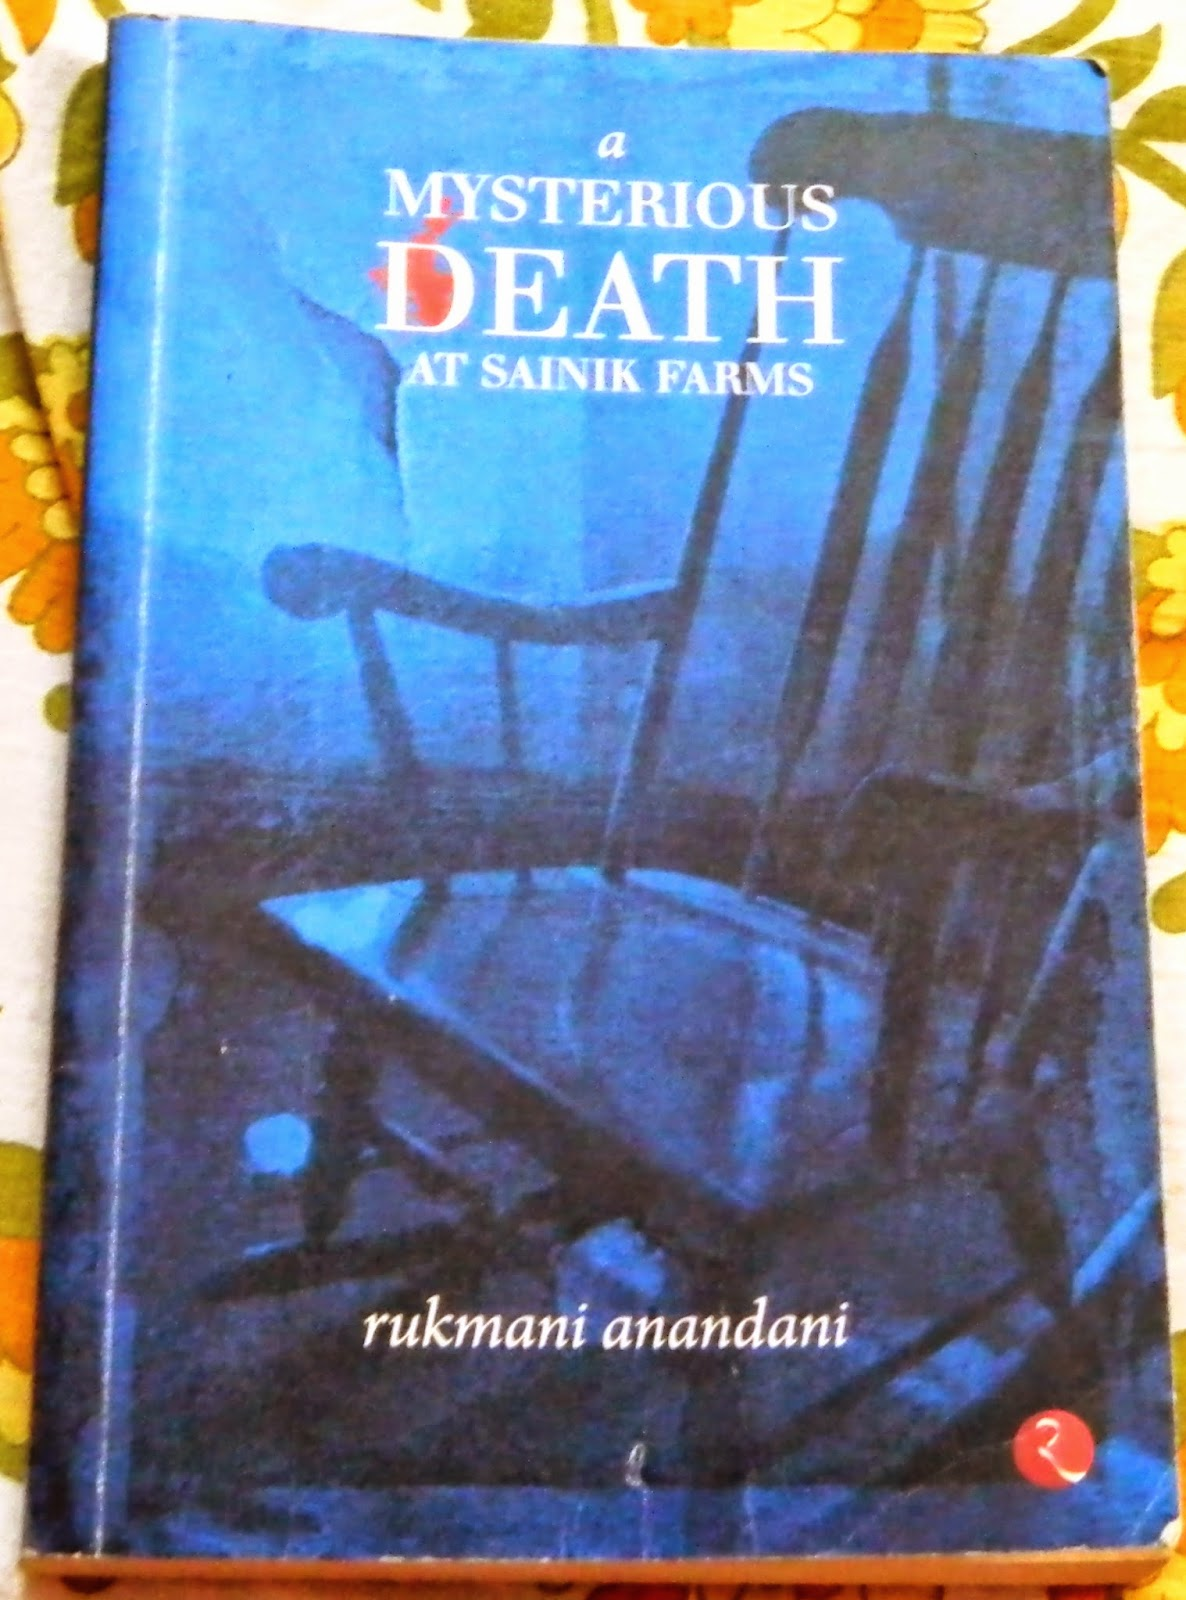 a mysterious death at sainik farms by rukmani anandani cover image